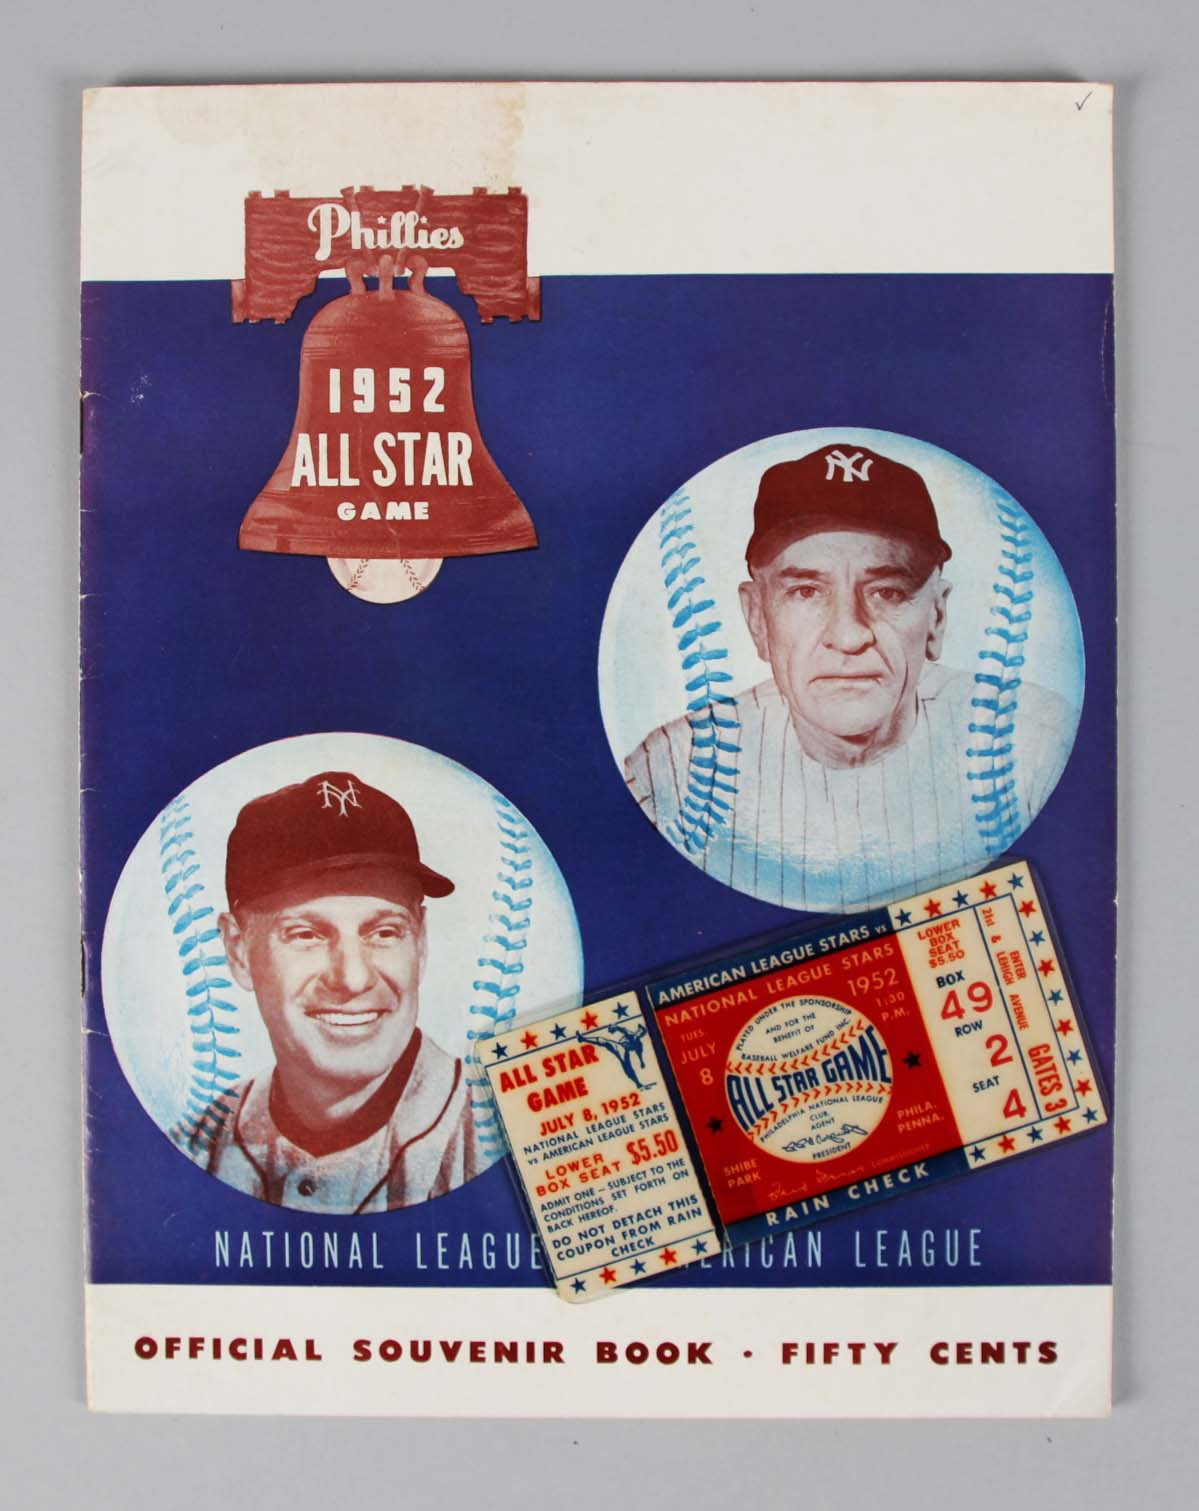 Original 1952 MLB All Star Ticket Stub & Program Mantle & Satchel Paige 1st All Star Game